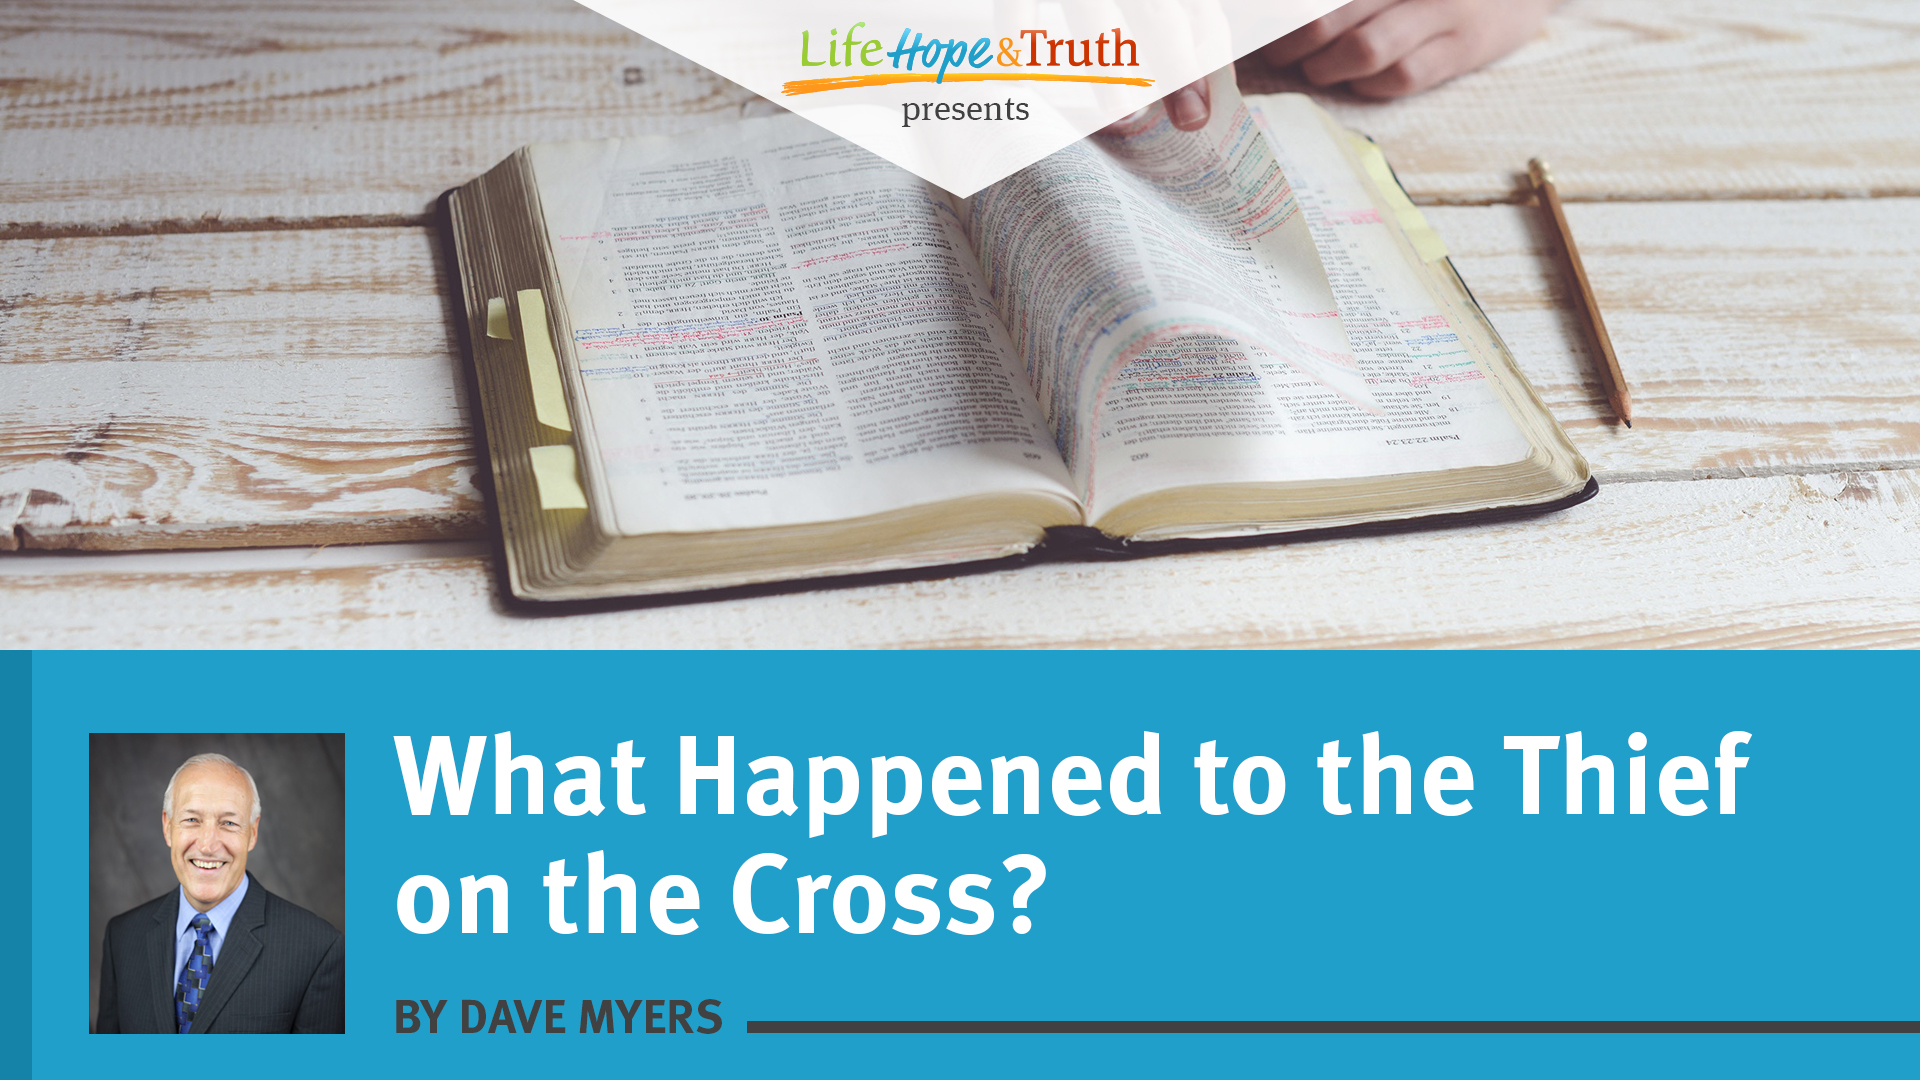 What Happened to the Thief on the Cross?